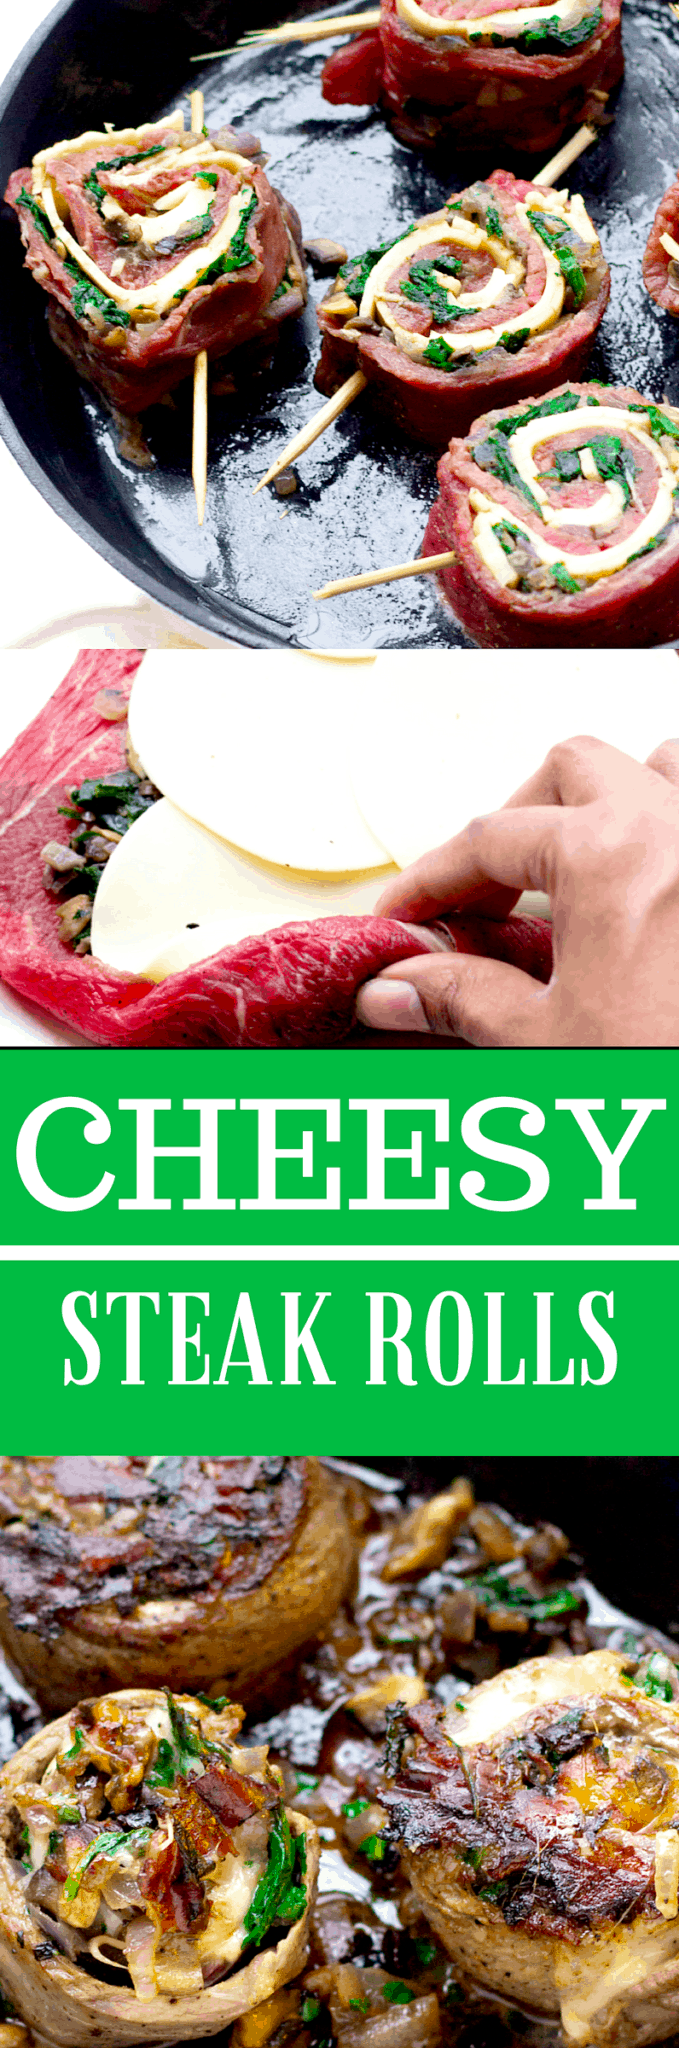 Quick Cheesy Spinach and Mushroom Steak Rolls